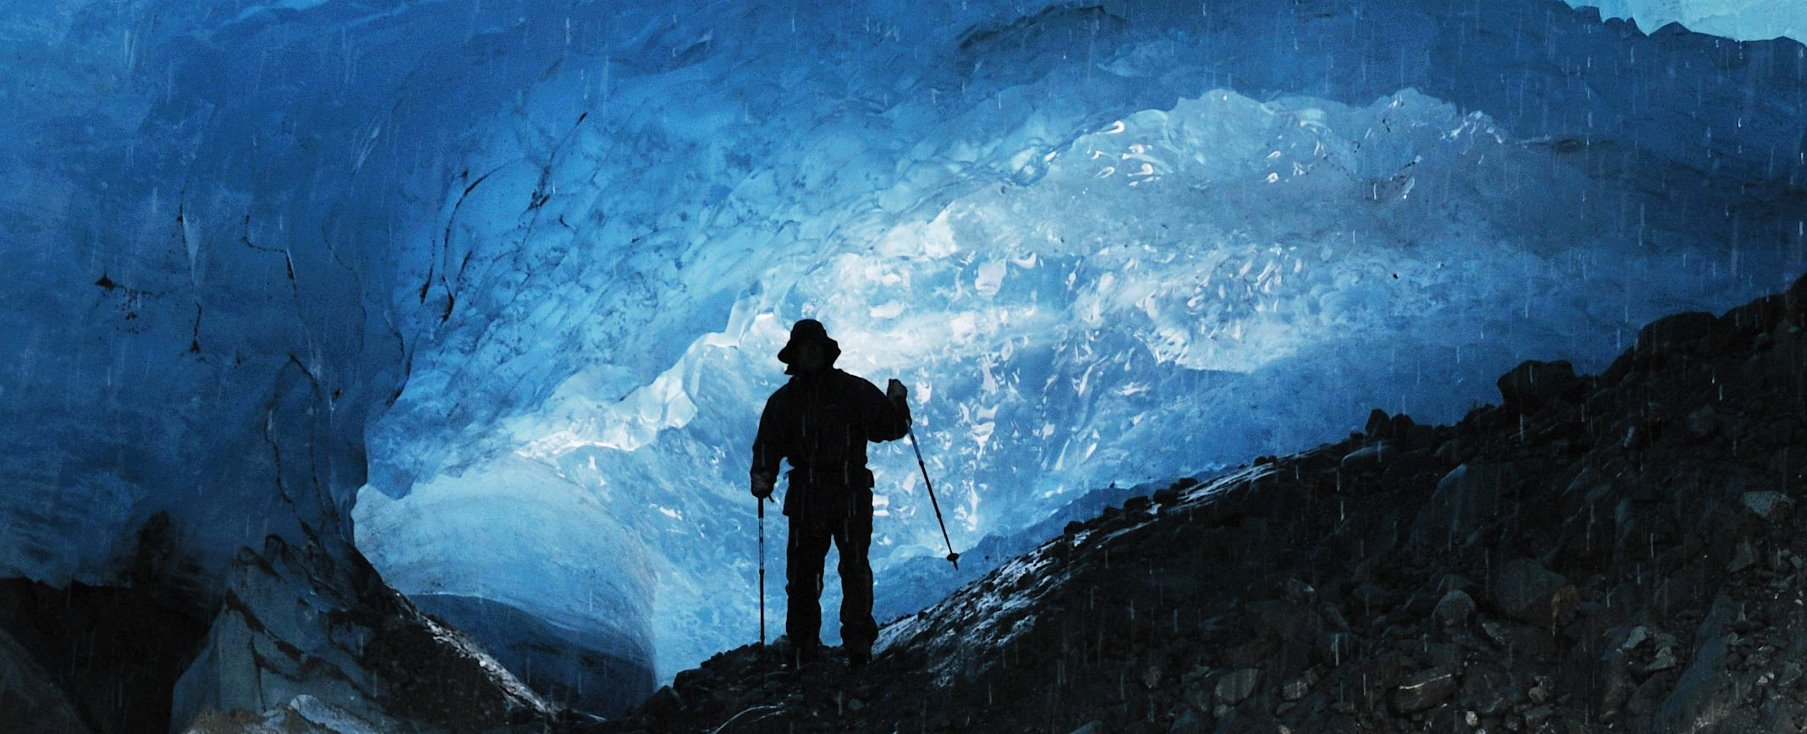 Water dripping from the roof of a moving glacier.